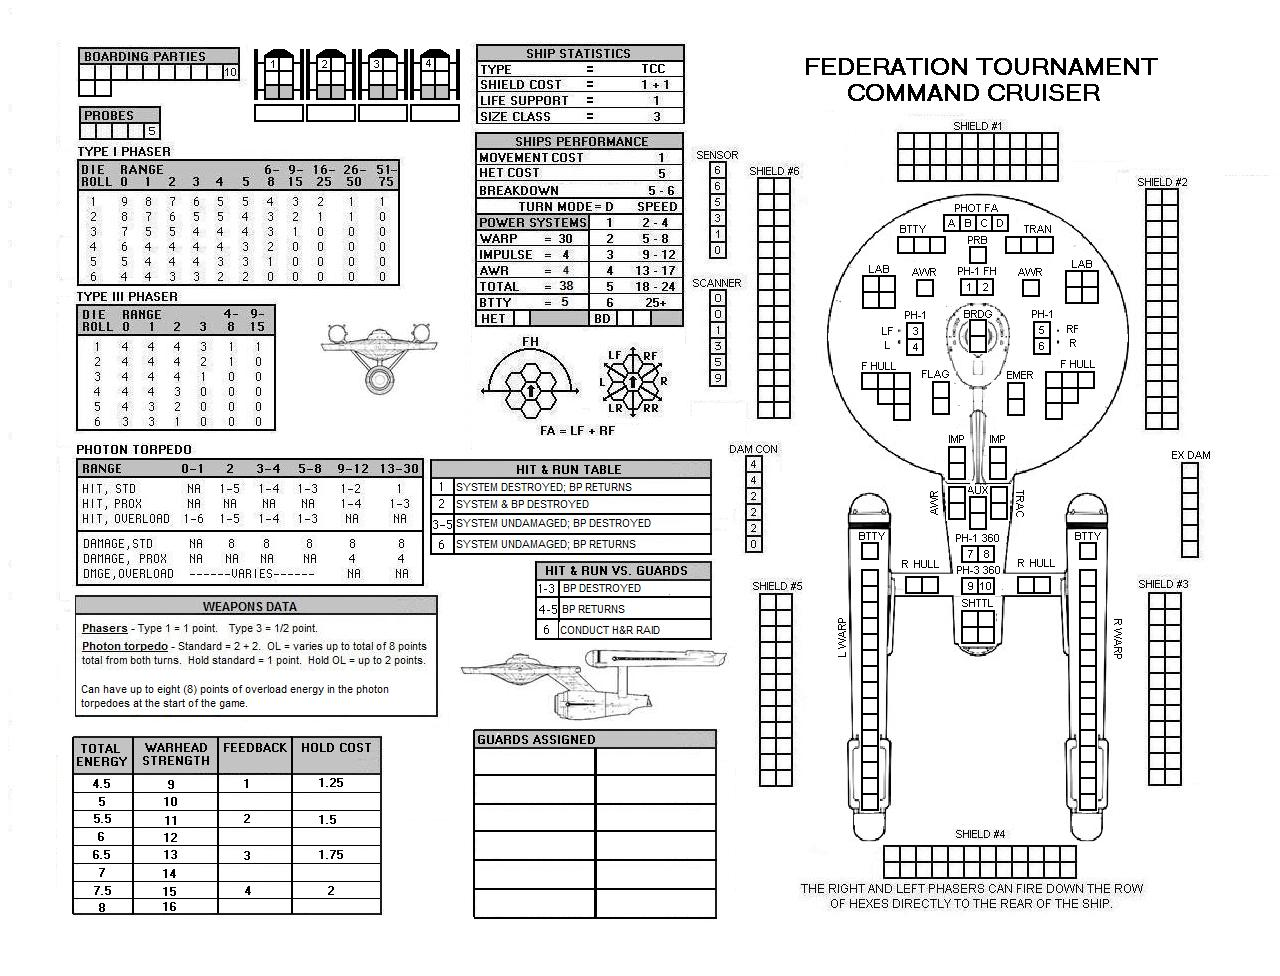 Federation Tournament Command Cruiser SSD for Star Fleet Battles